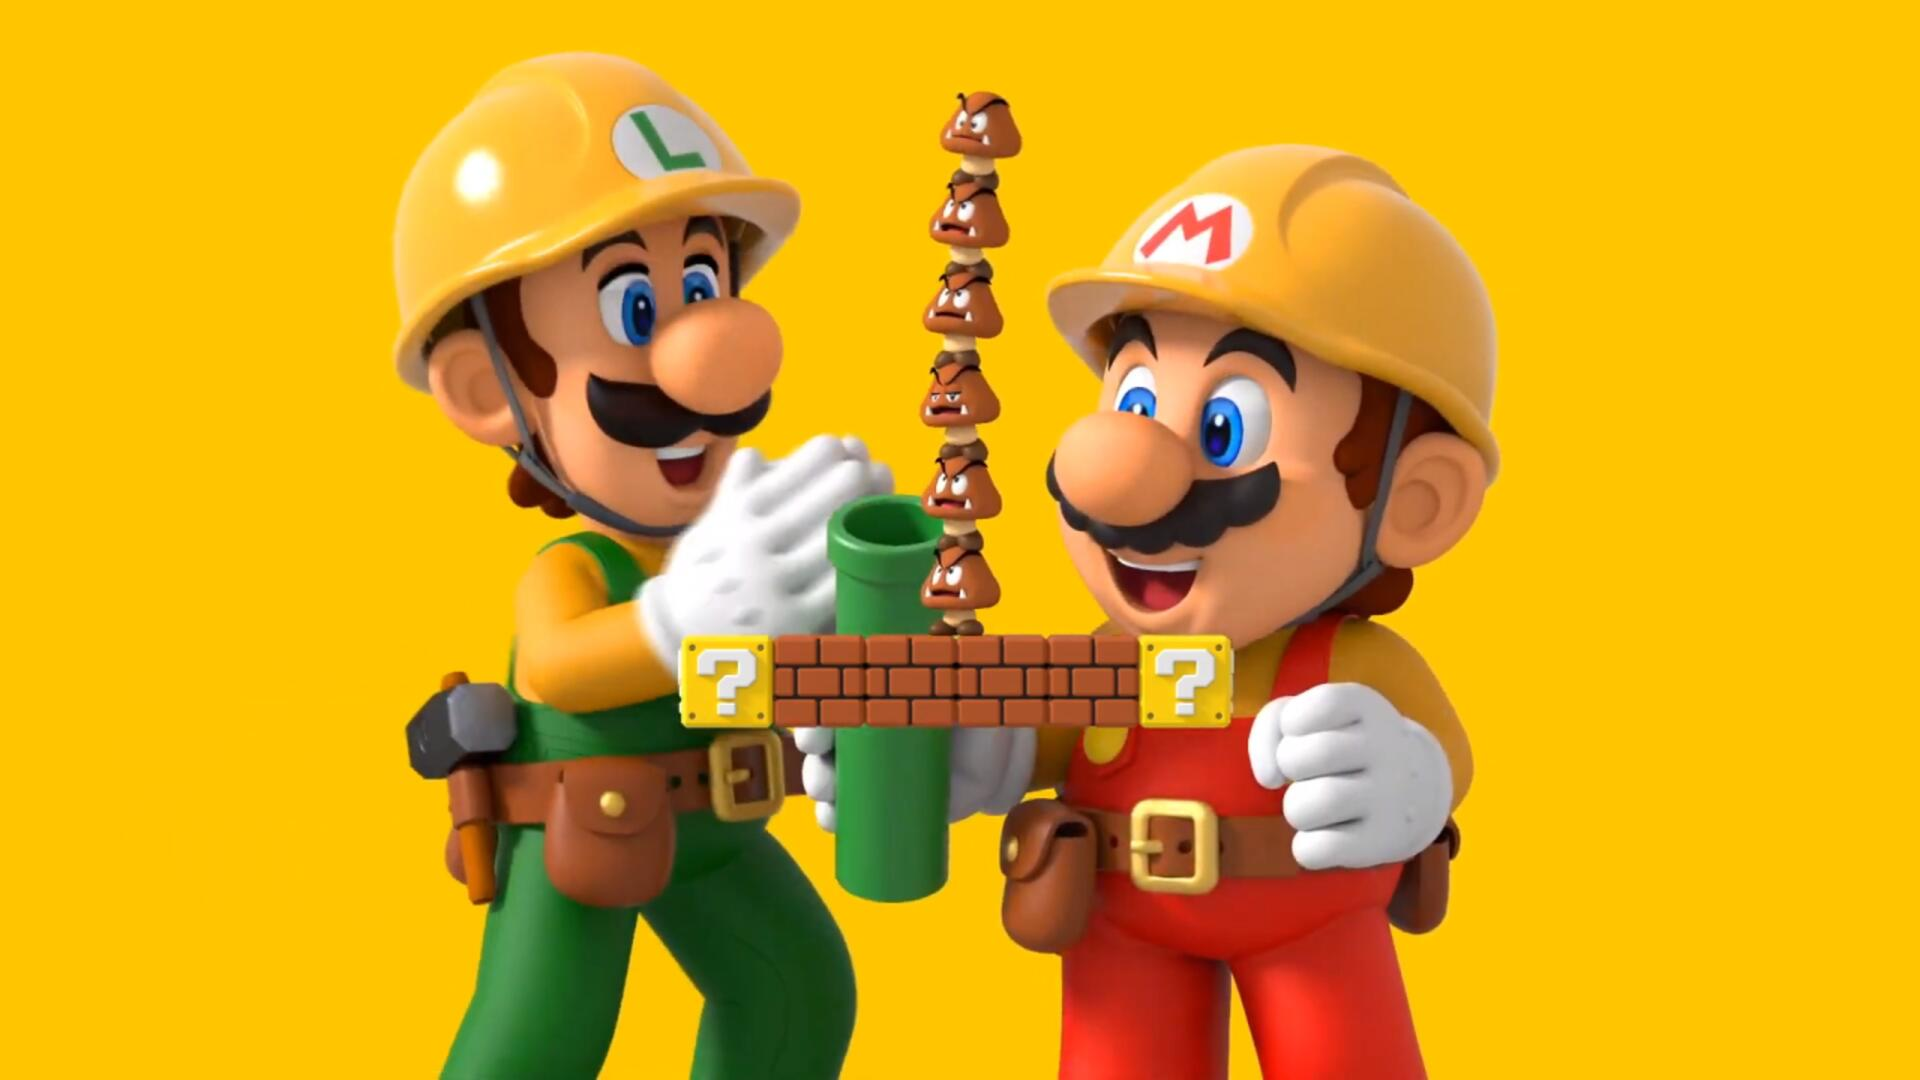 Super Mario Maker 2 Nintendo Direct Recap: Story Mode, Online Play, and Everything Else We Learned